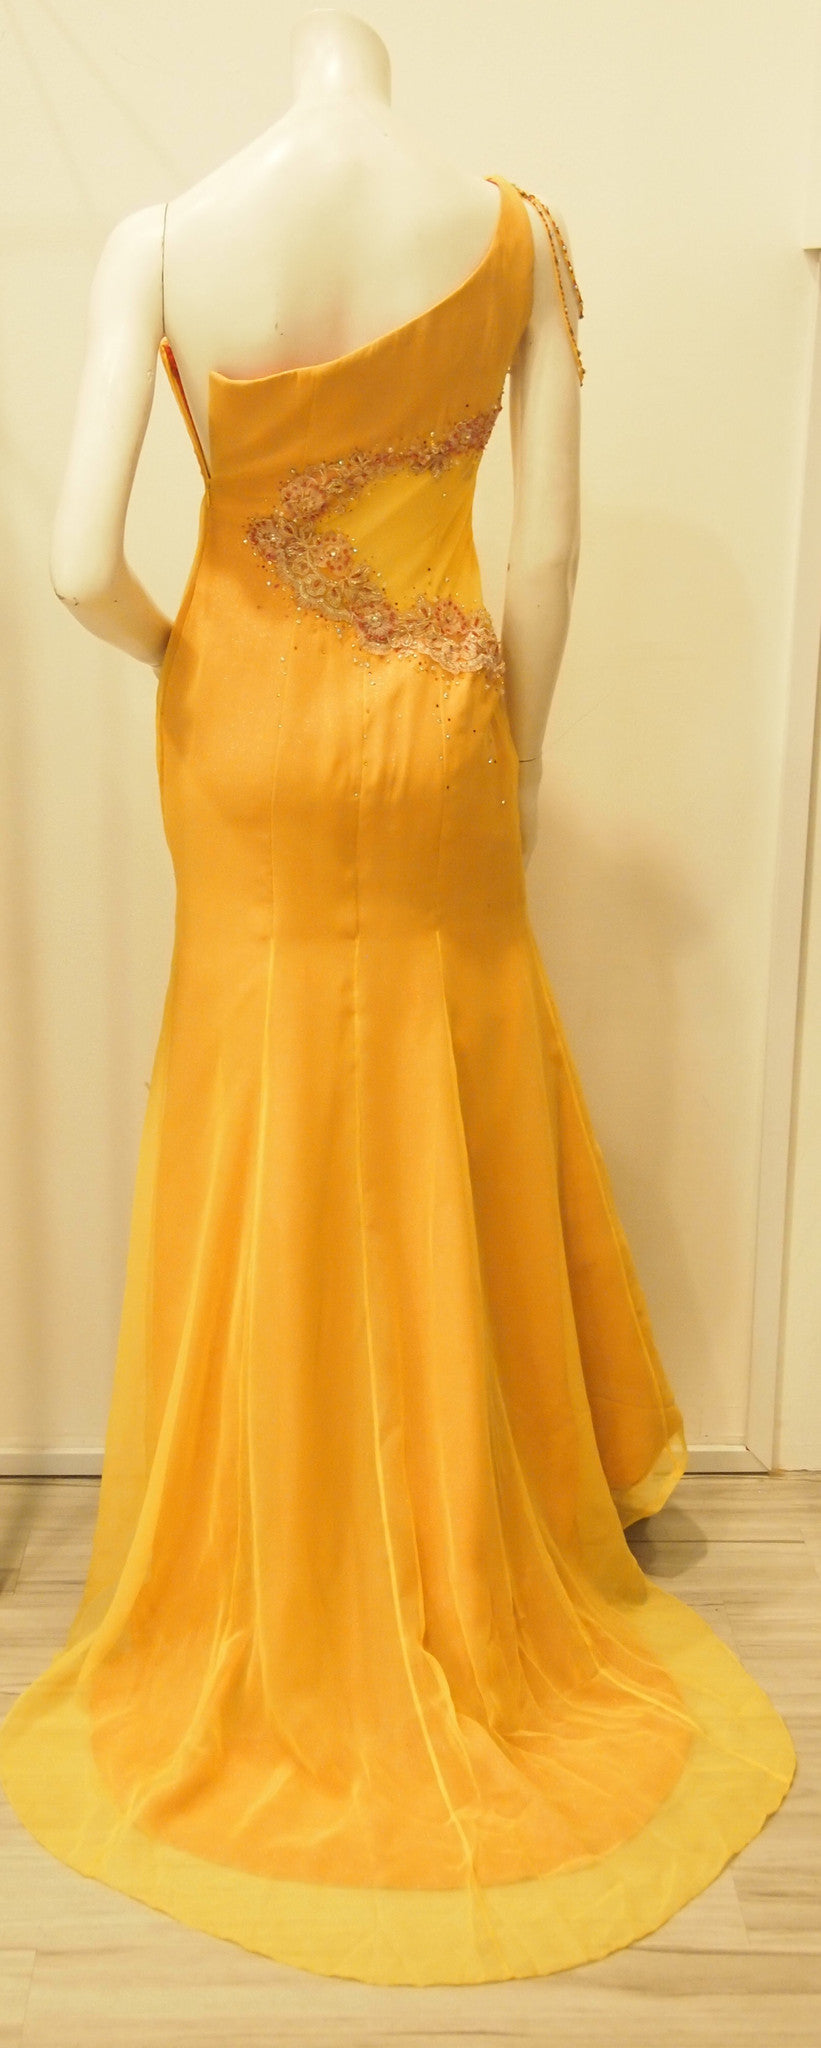 Scarlett O'hara Golden Vintage Evening Dress